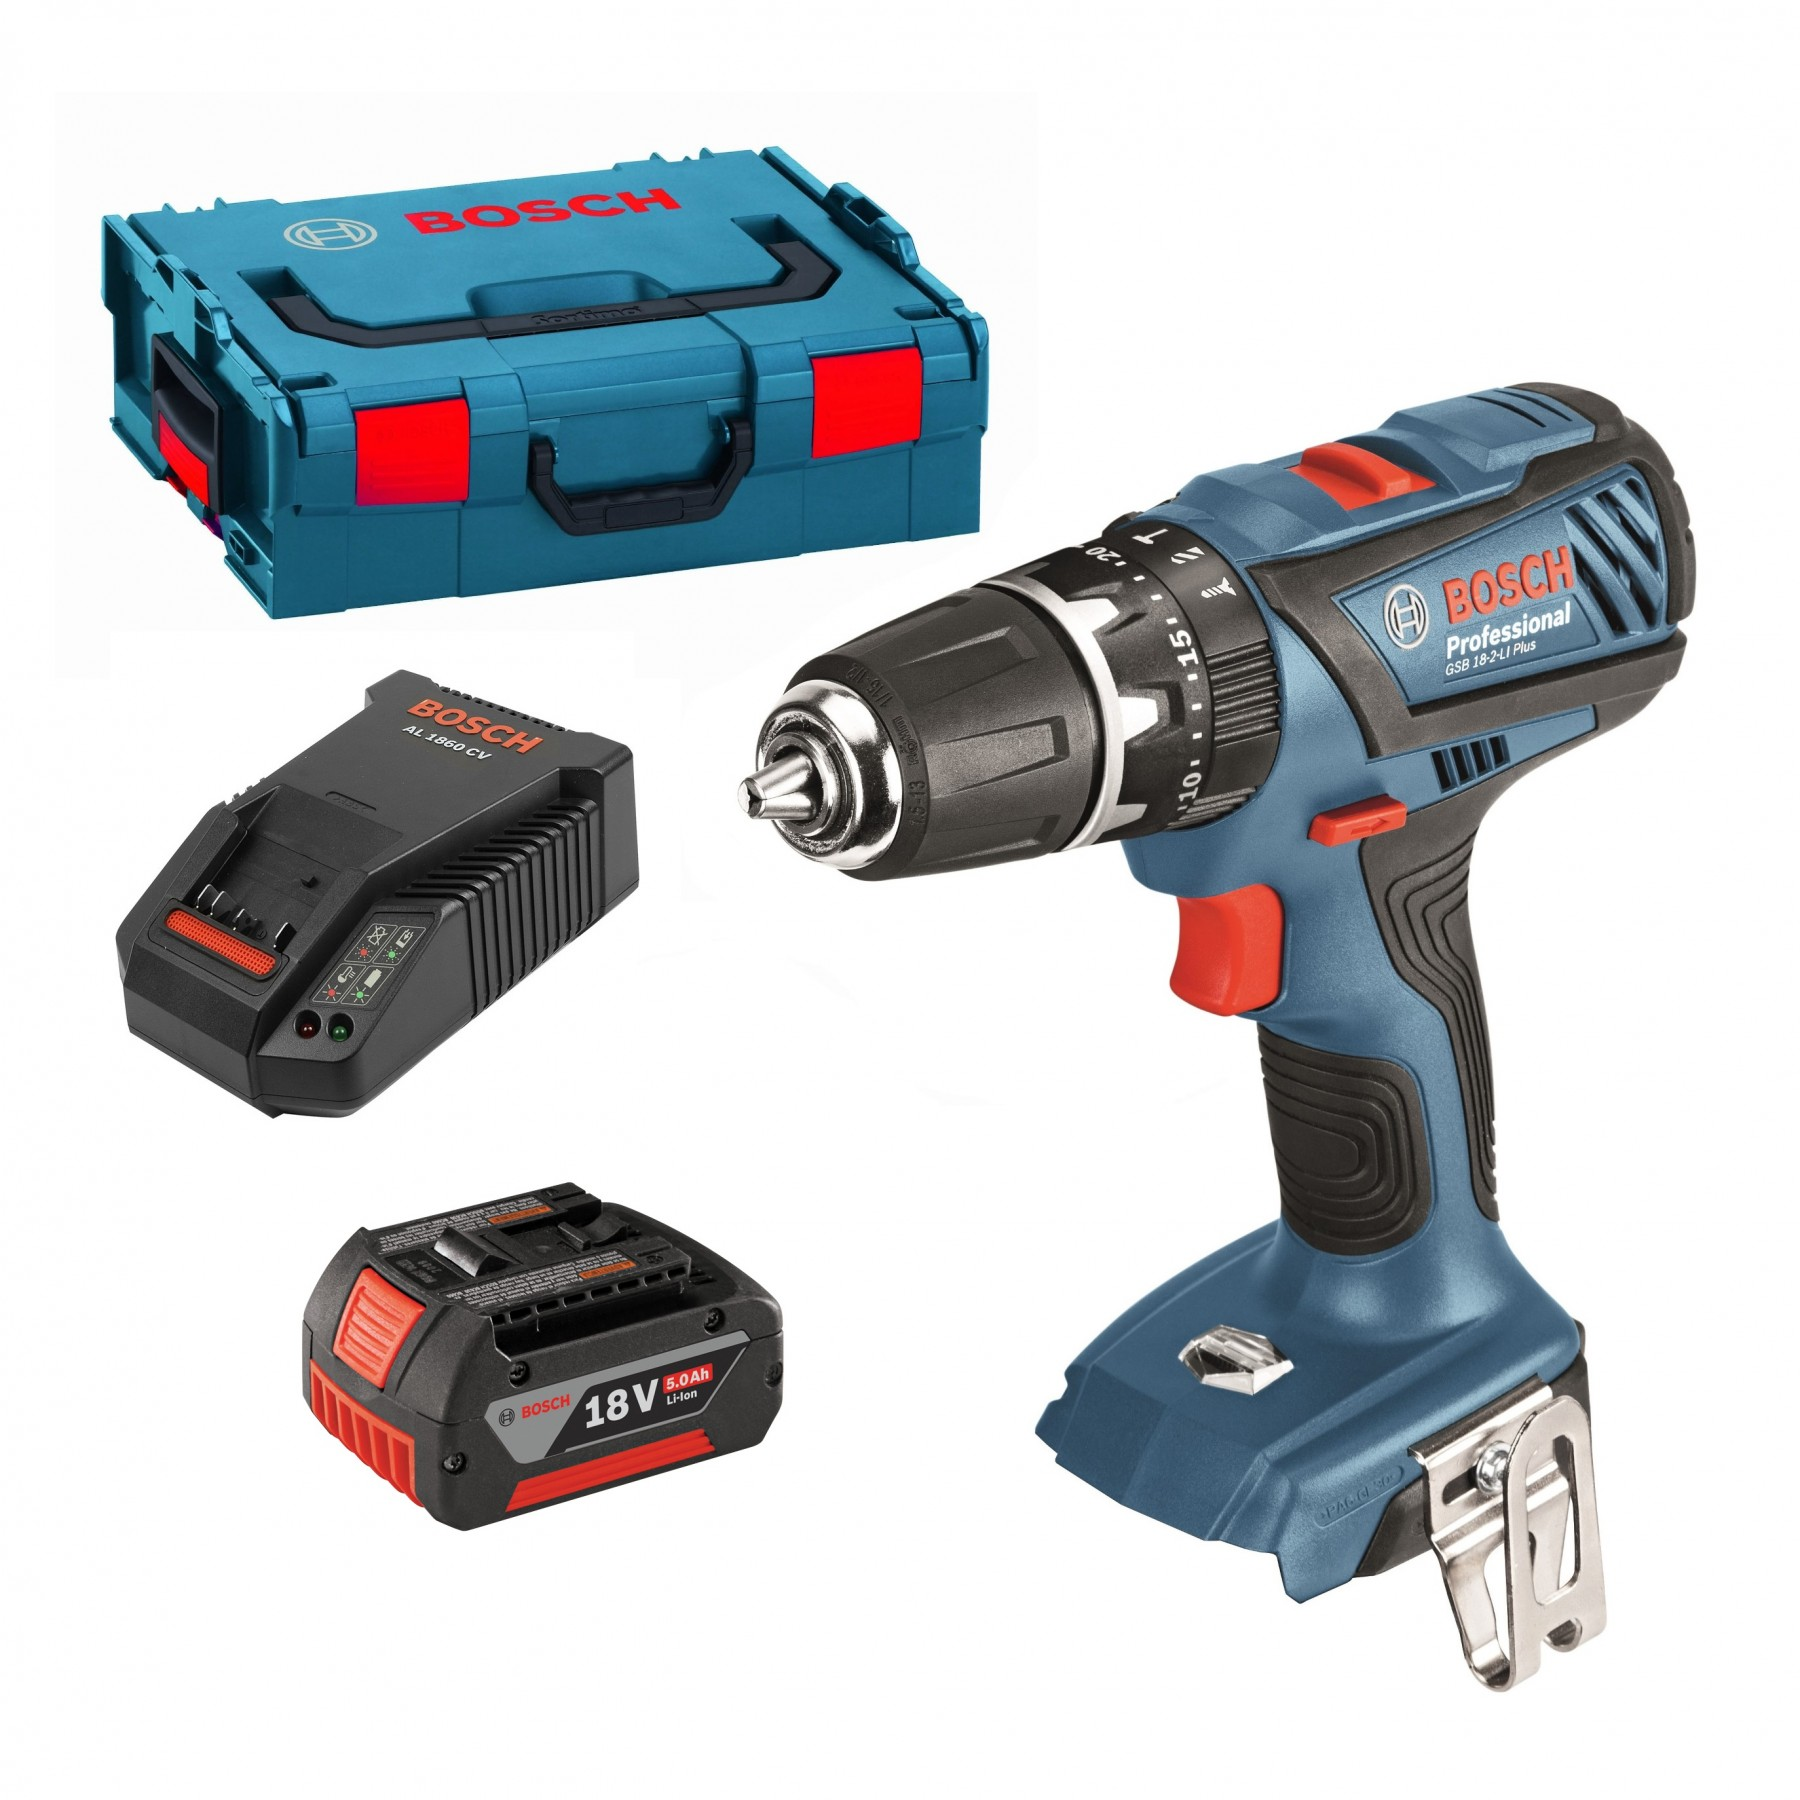 bosch gsb 18 2 li plus 18v combi drill inc 1x 5 0ah battery in l boxx 0615990hc7 powertool world. Black Bedroom Furniture Sets. Home Design Ideas